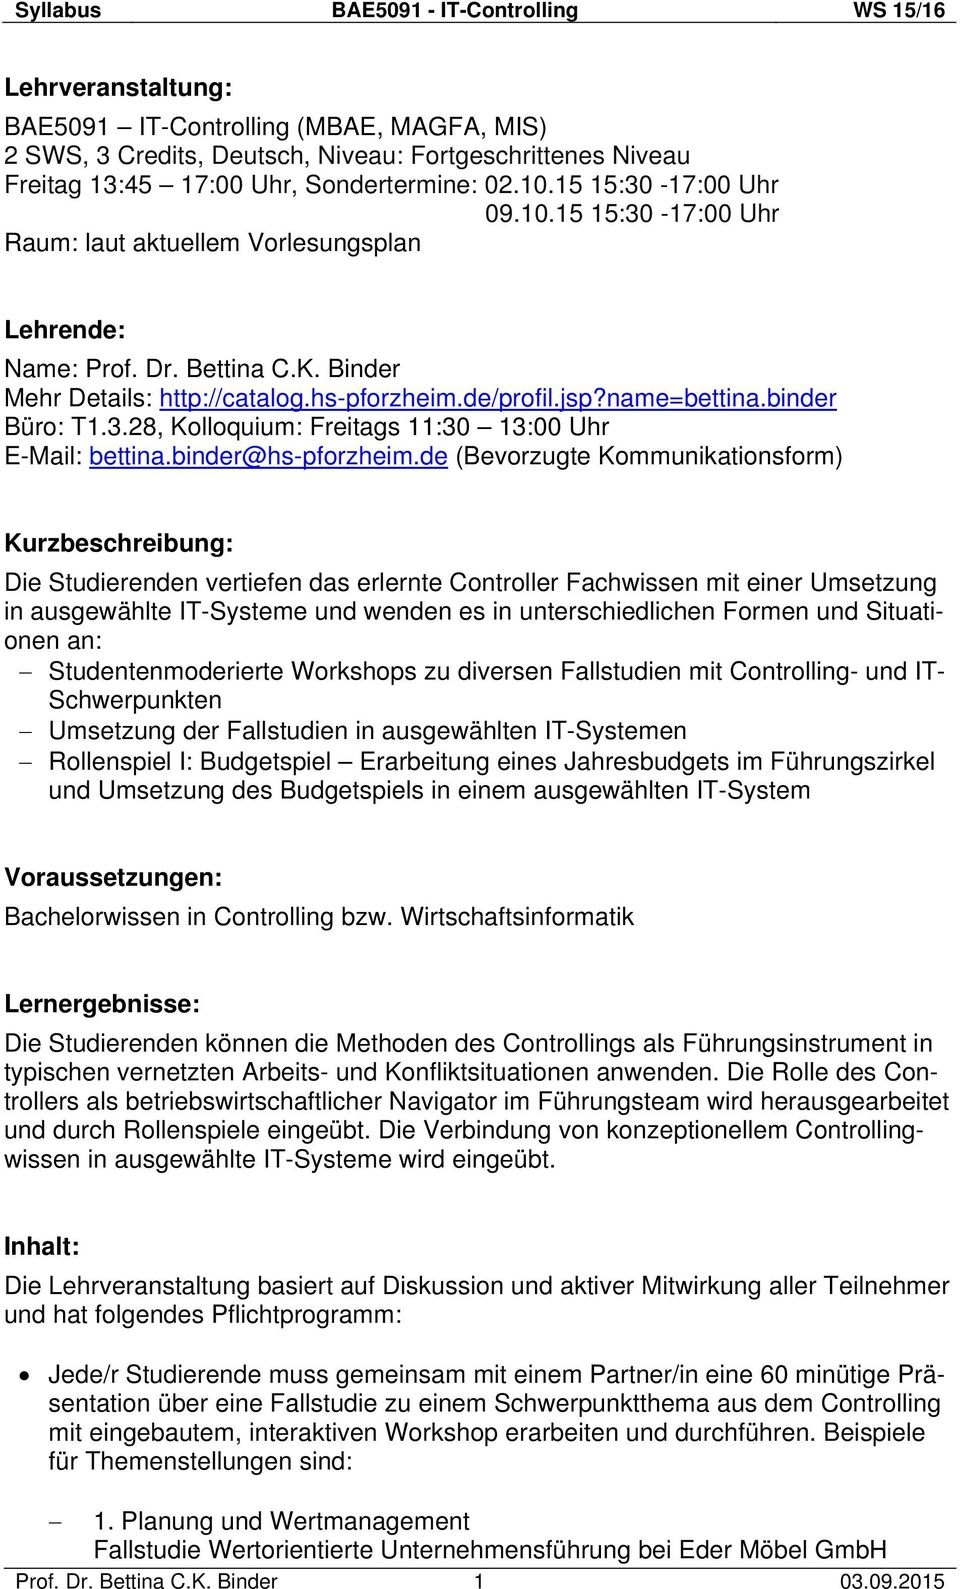 binder Büro: T1.3.28, Kolloquium: Freitags 11:30 13:00 Uhr E-Mail: bettina.binder@hs-pforzheim.